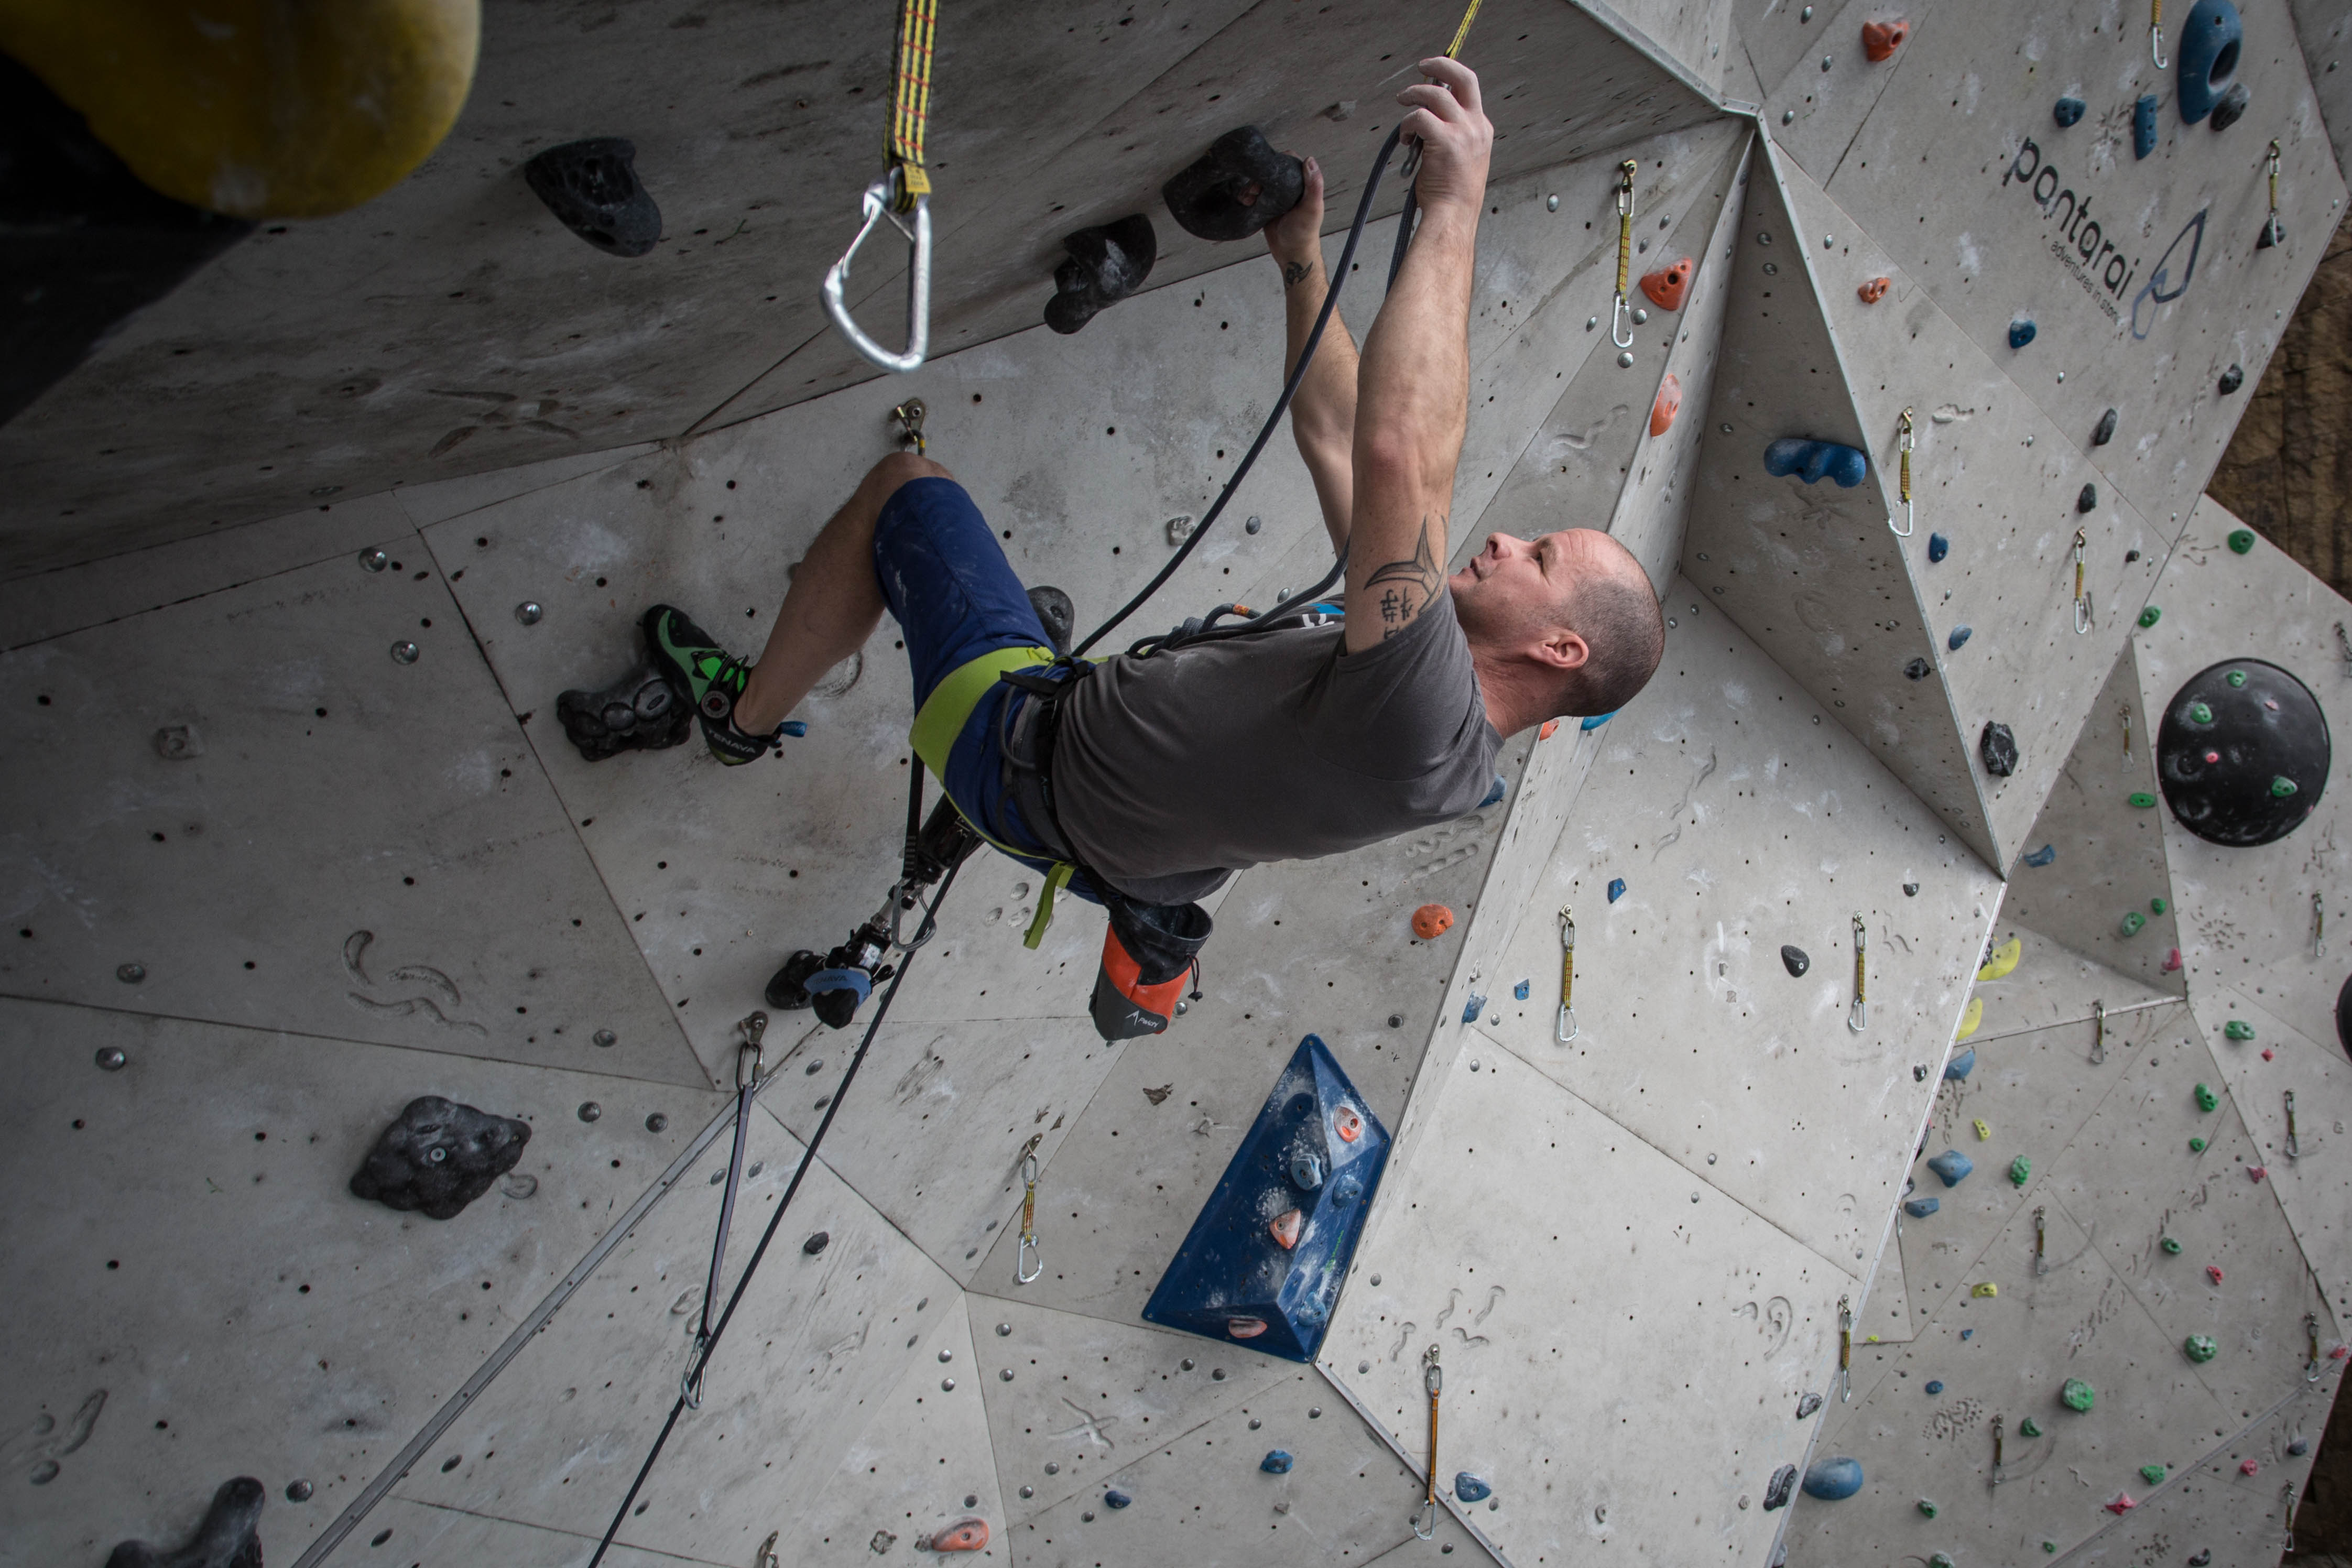 Paraclimber, Keith Lynch helps launch Paraclimbing Cup at EICA Ratho Finalcrux-9